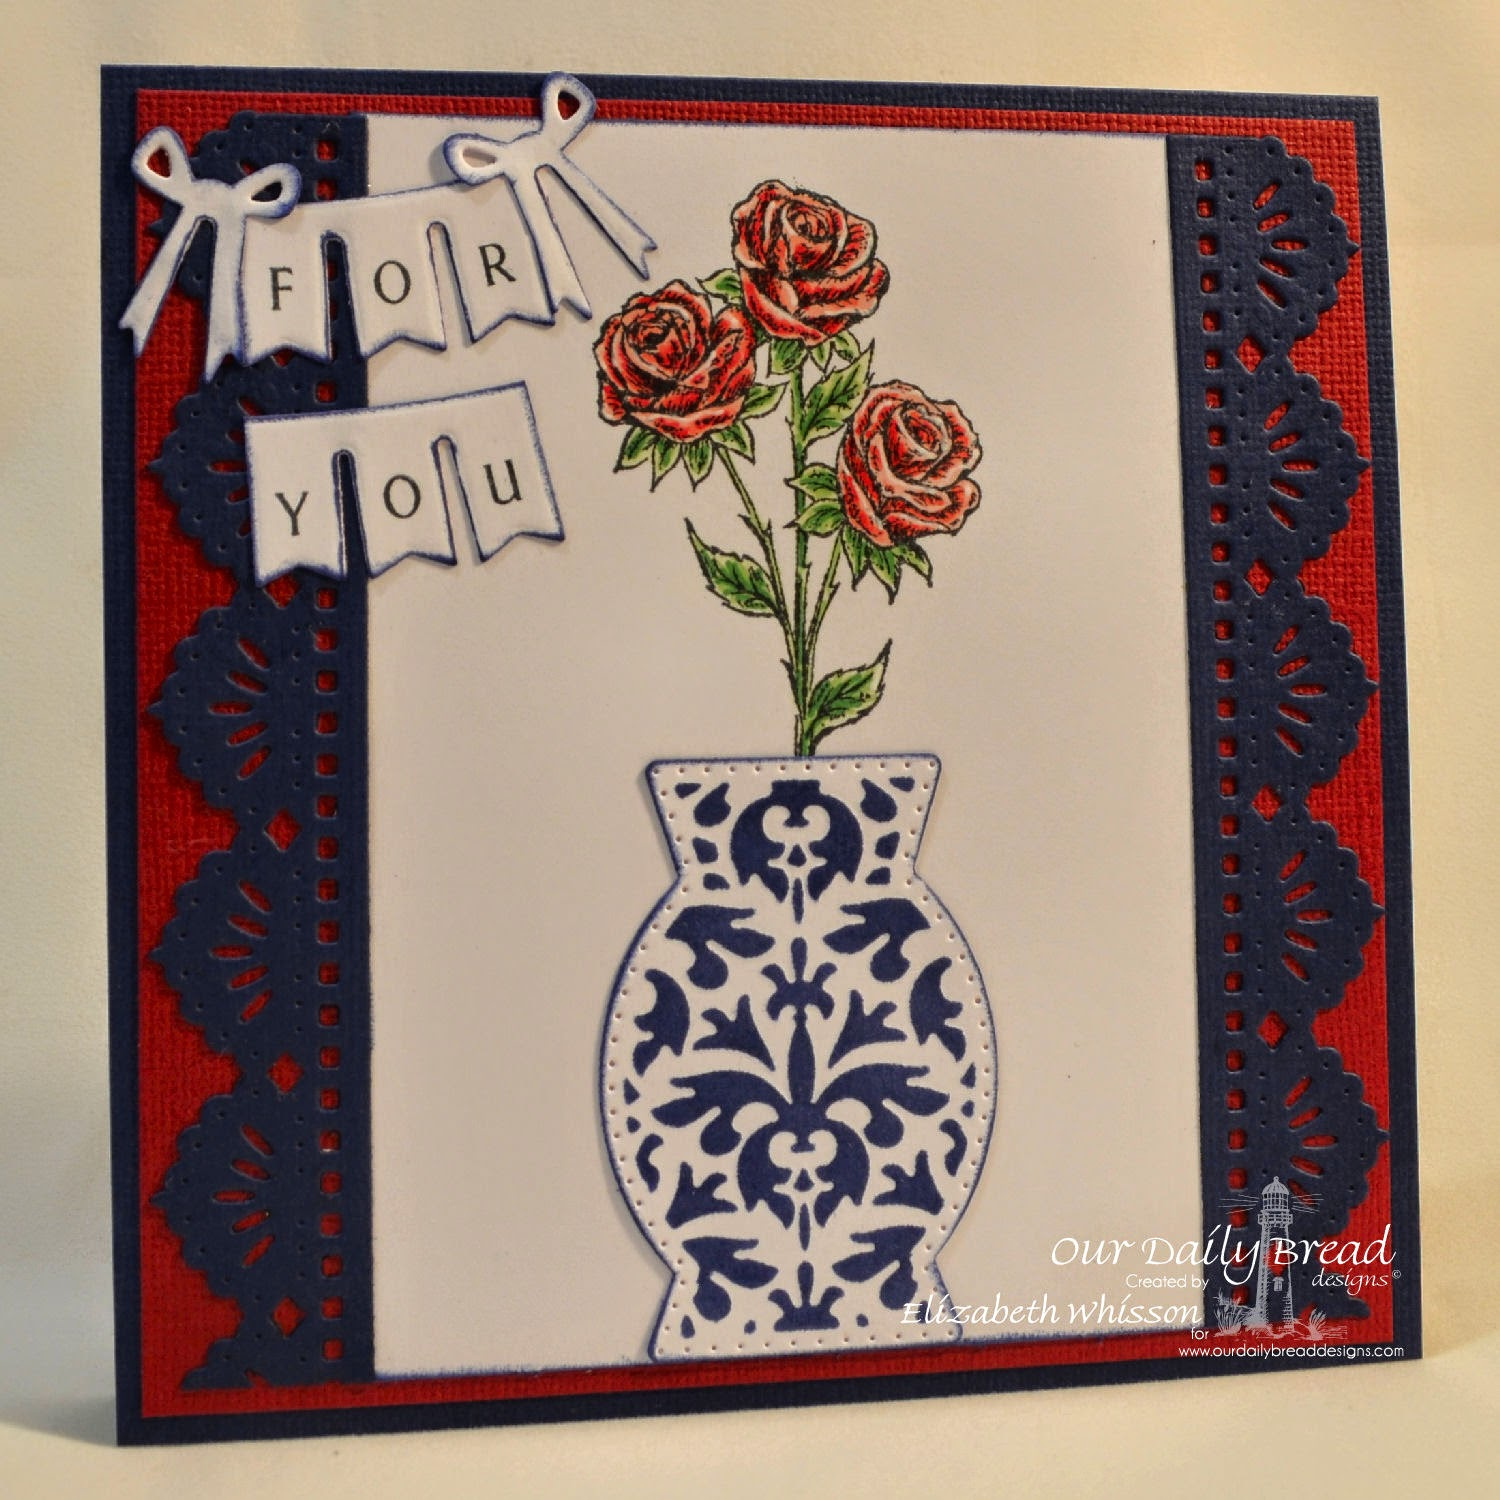 Our Daily Bread Designs, handmade card, Elizabeth Whisson, Copic, Rose, Decorative Vase, Beautiful Borders, Pennant Swag, Pennant Swag Alphabet